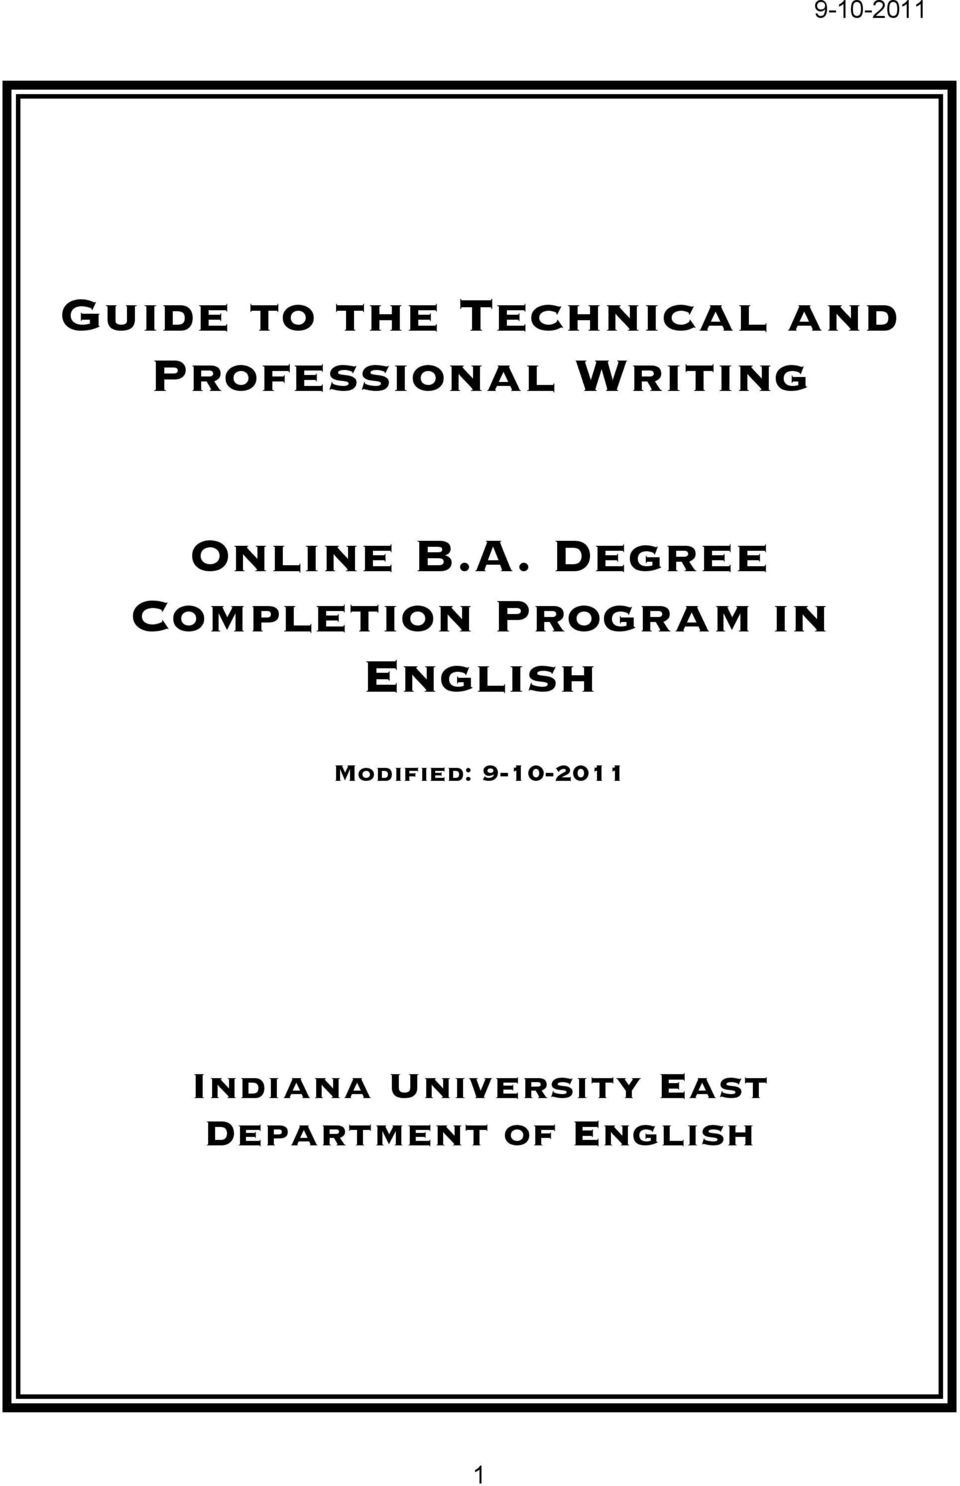 Degree Completion Program in English